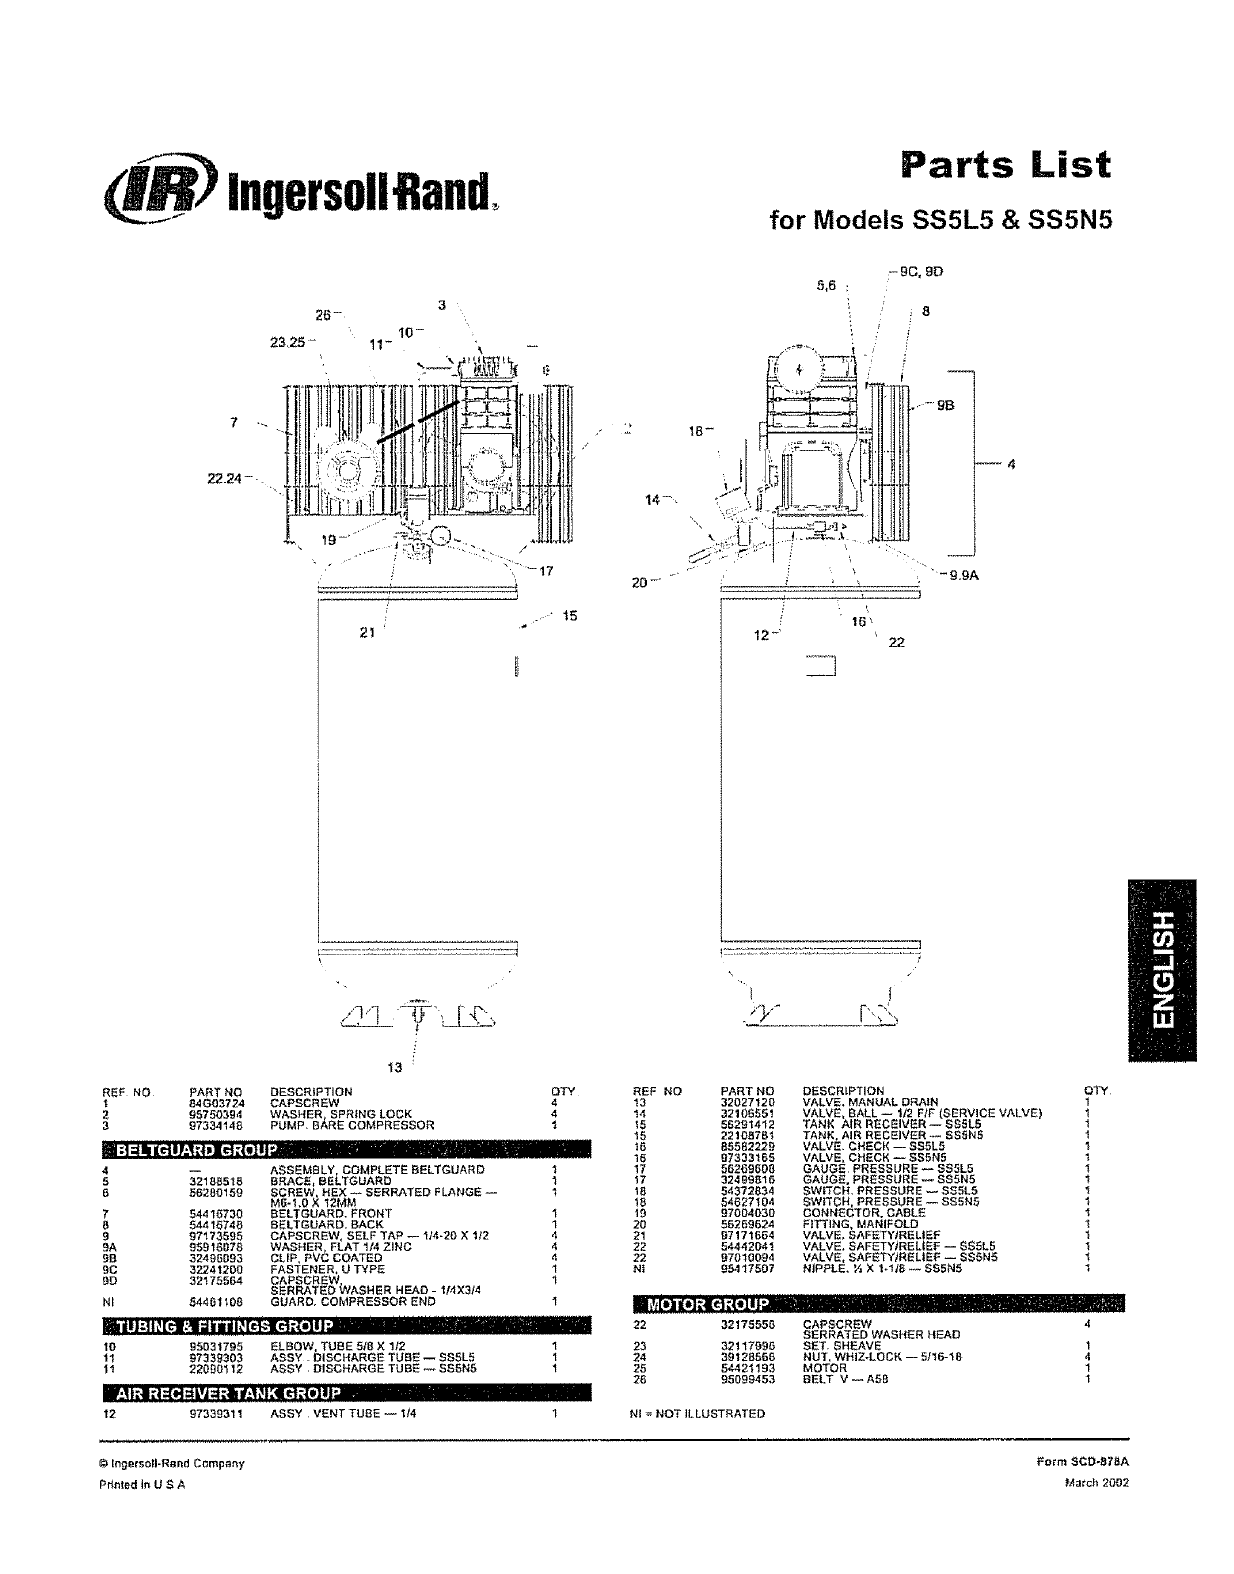 Wiring Diagram: 30 Ingersoll Rand Ss3 Parts Diagram